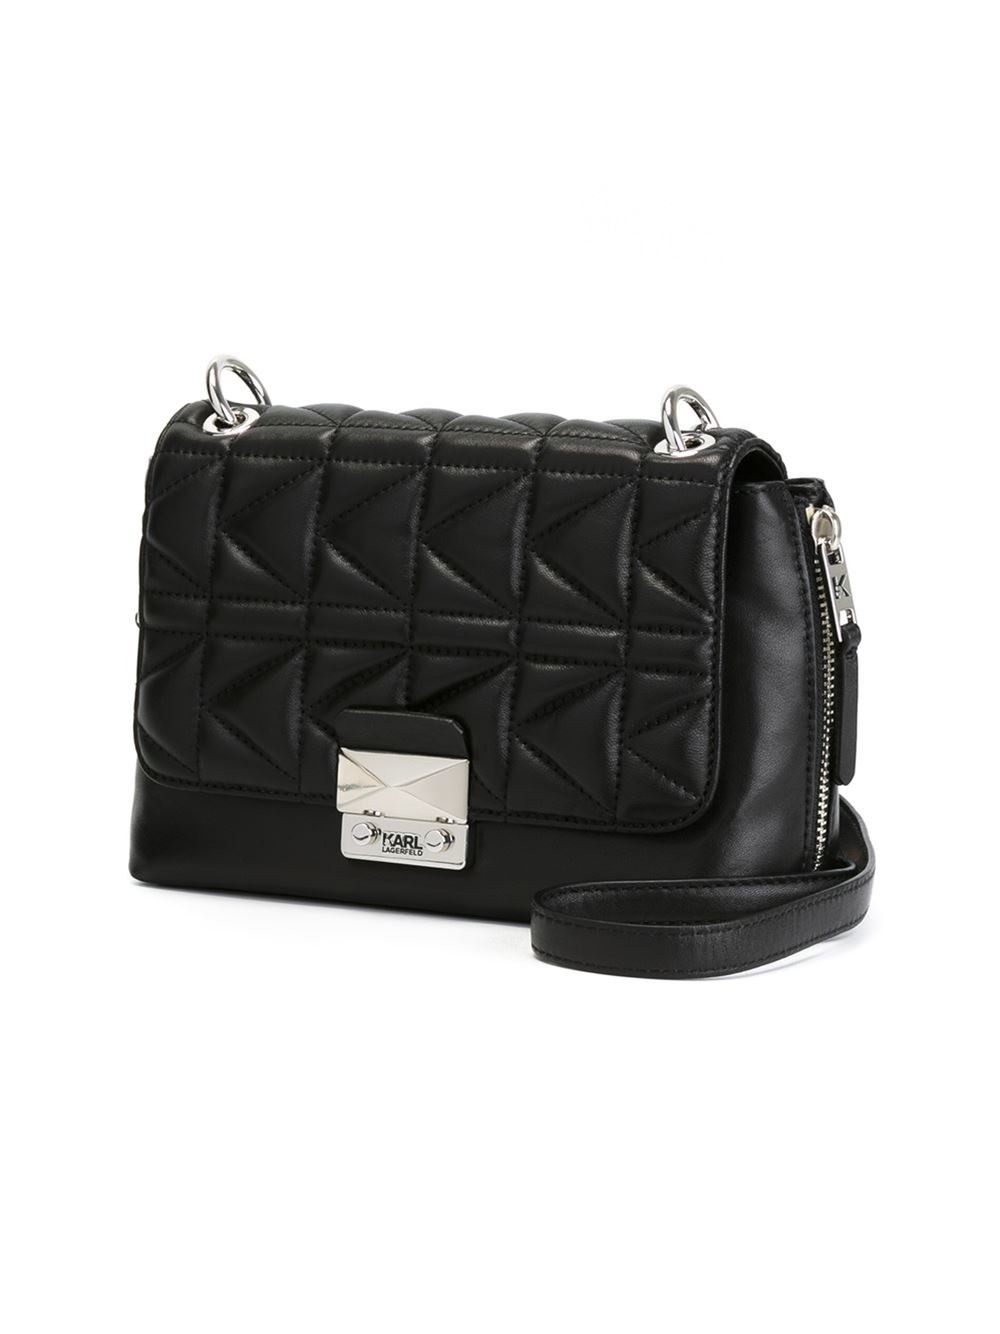 Karl lagerfeld Quilted Crossbody Bag in Black | Lyst : quilted crossbody - Adamdwight.com